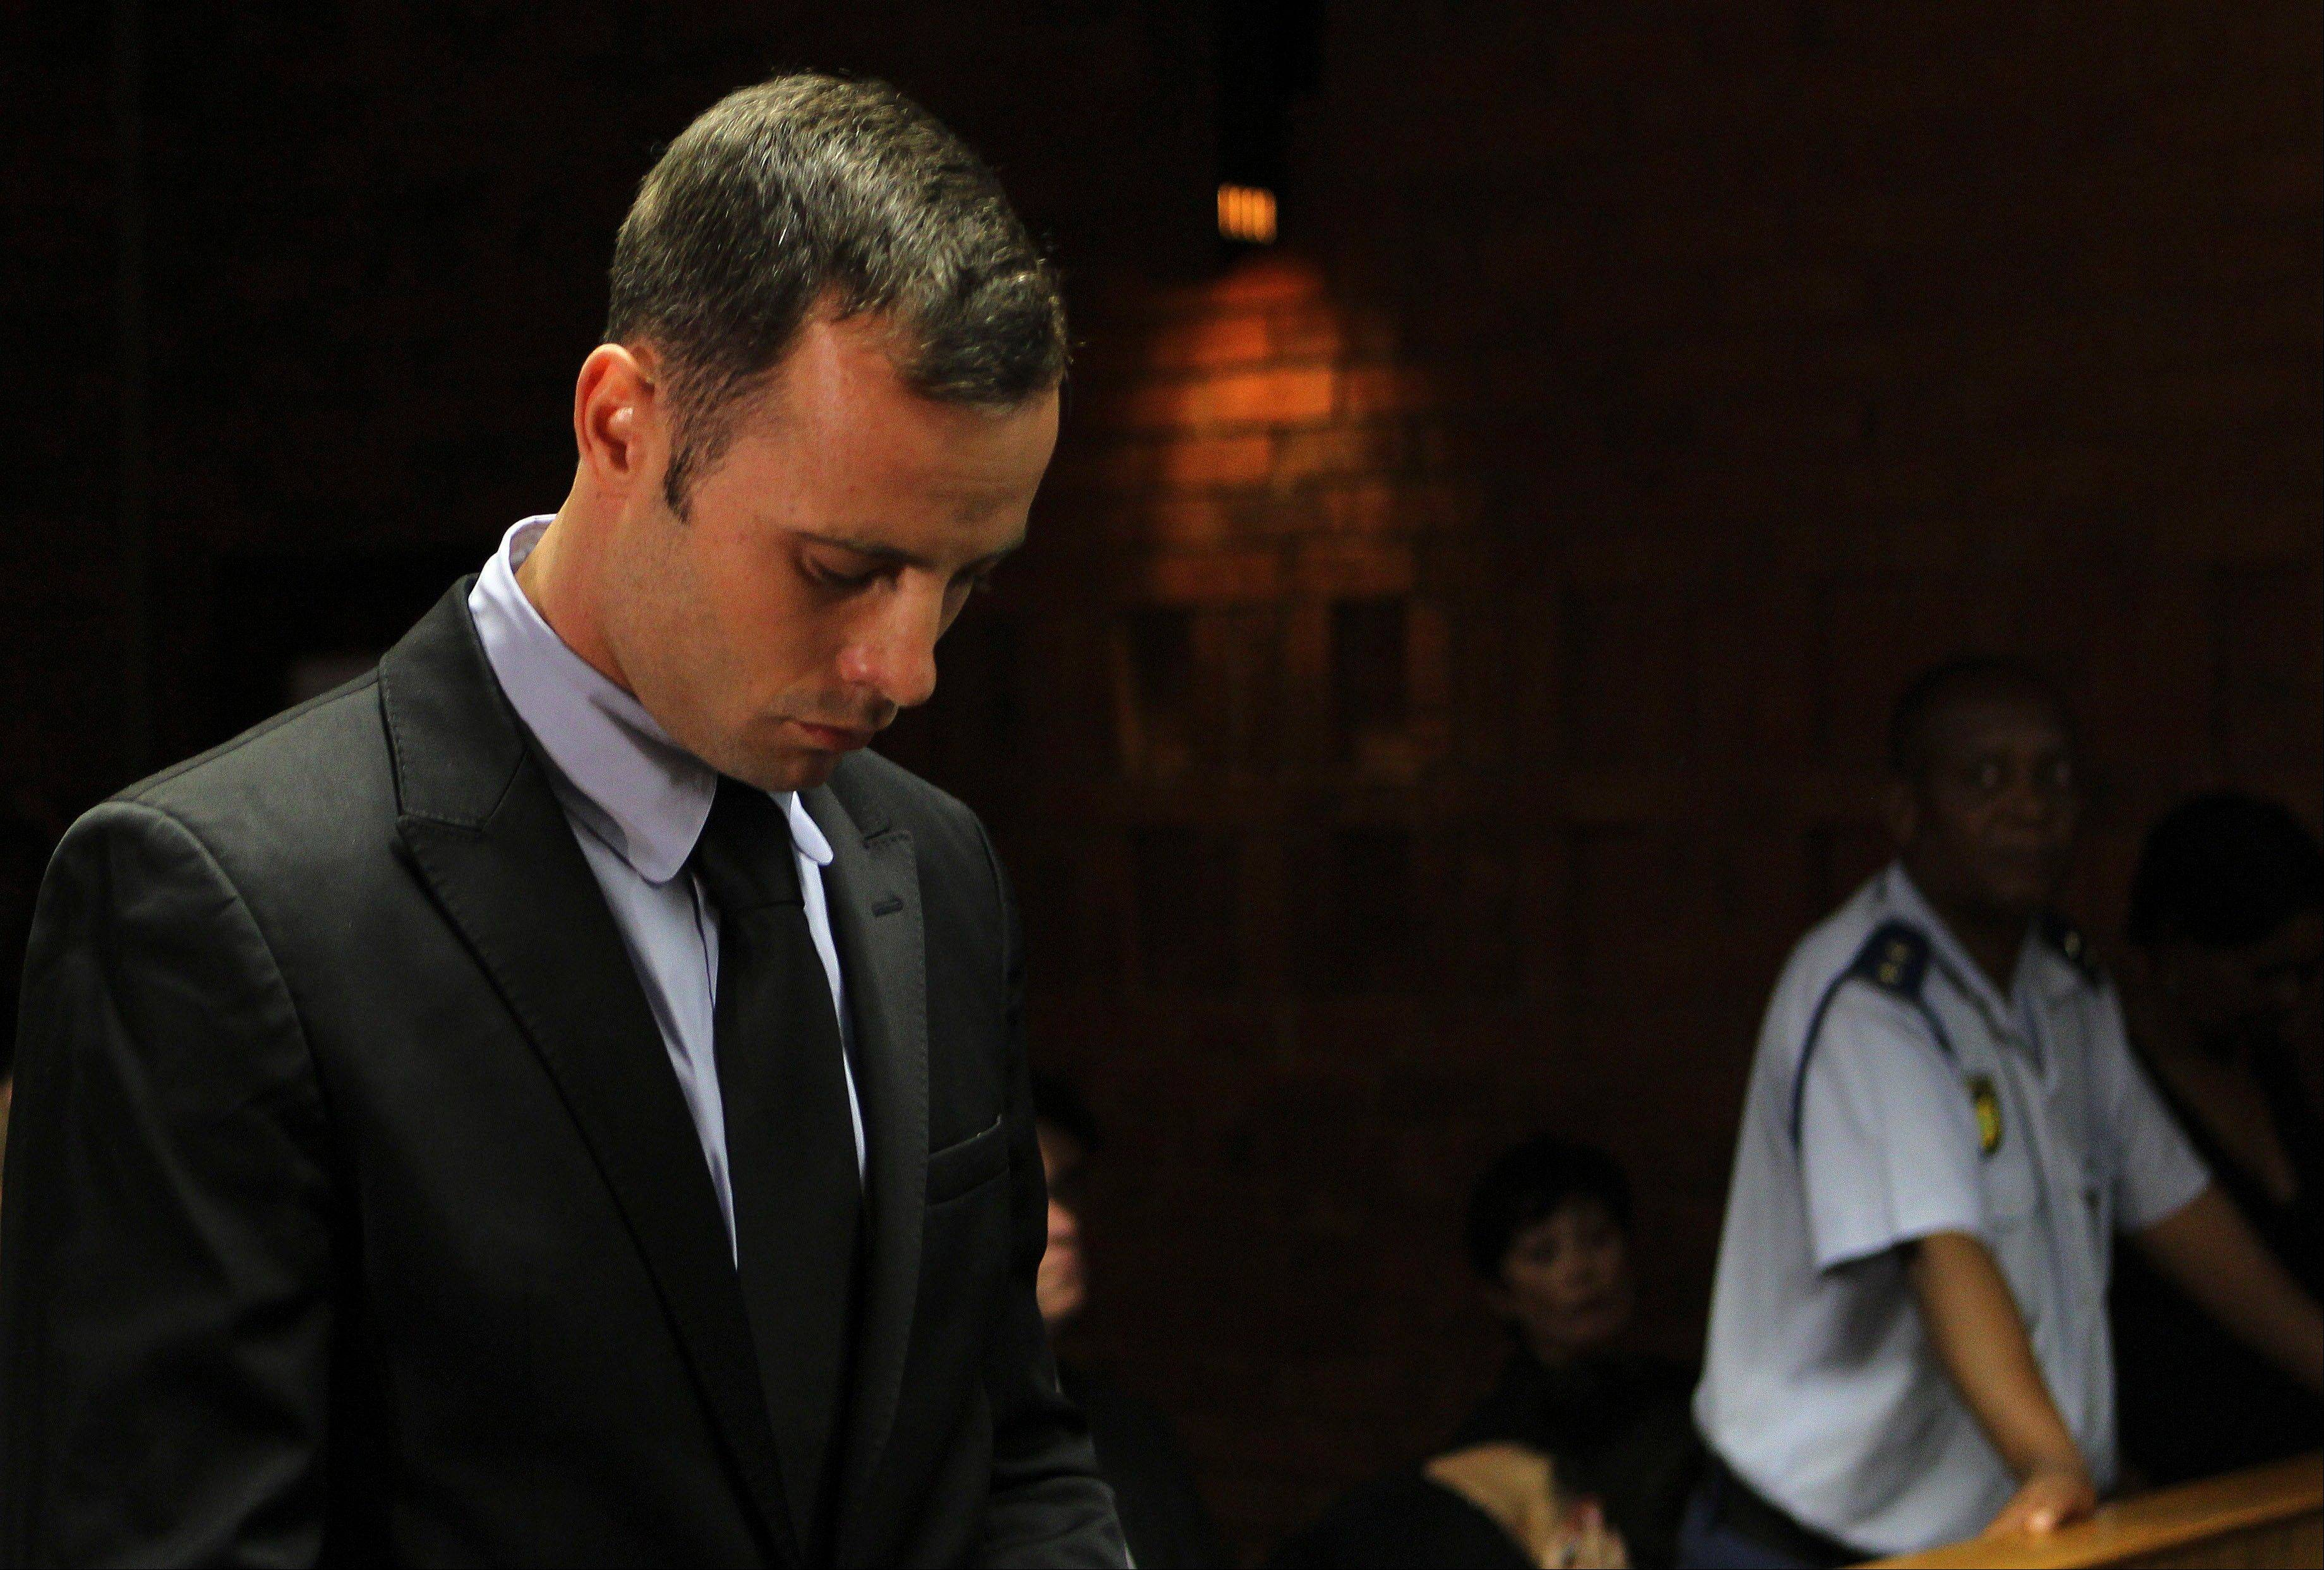 Police offer confused testimony in Pistorius case